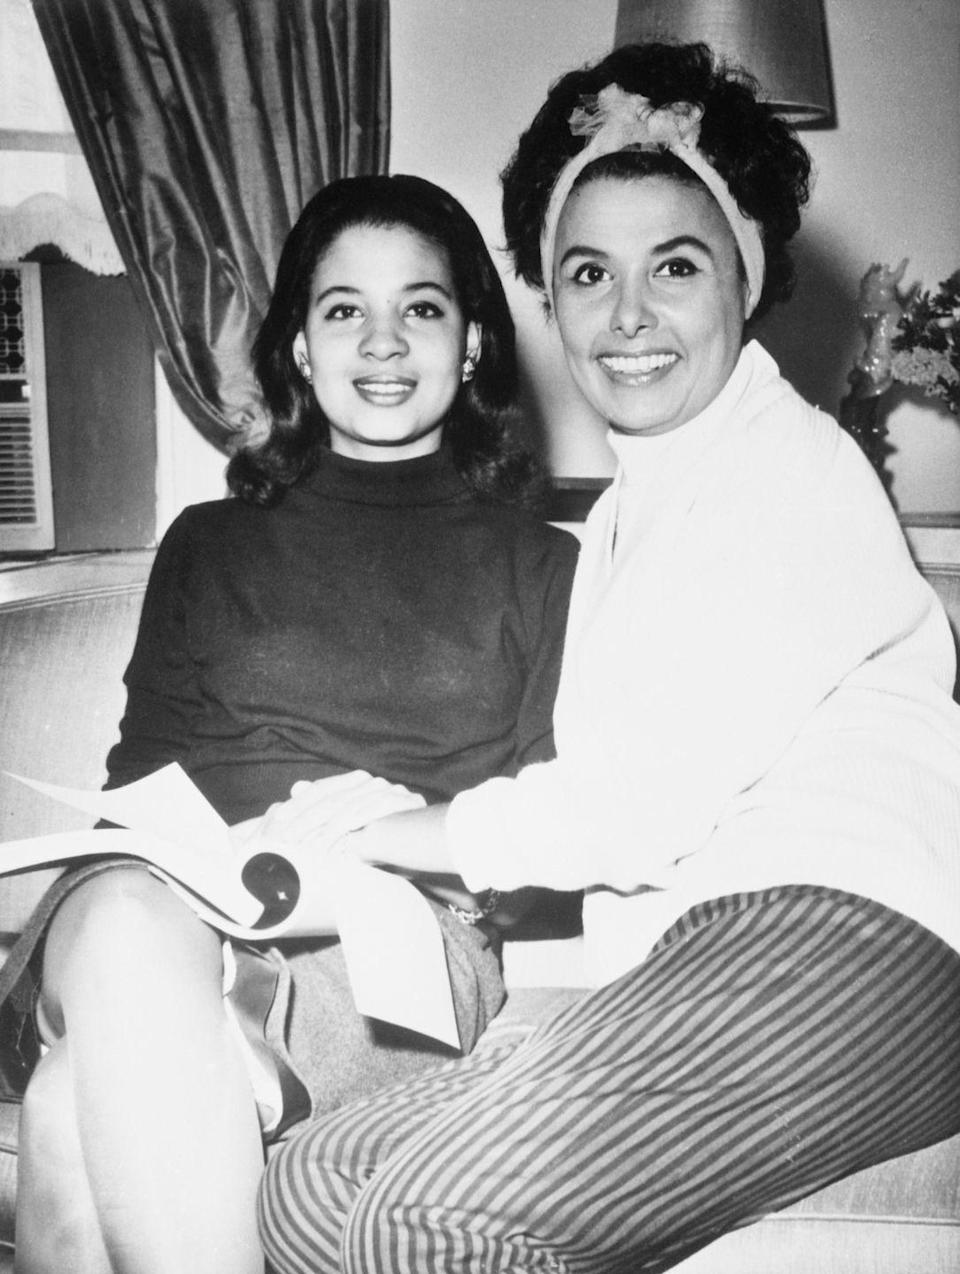 <p>Lena and her daughter, Gail Jones, hang out in the singer's Manhattan apartment in 1960. The dancer had two children, both born during her seven-year marriage to Louis Jordan Jones. </p>